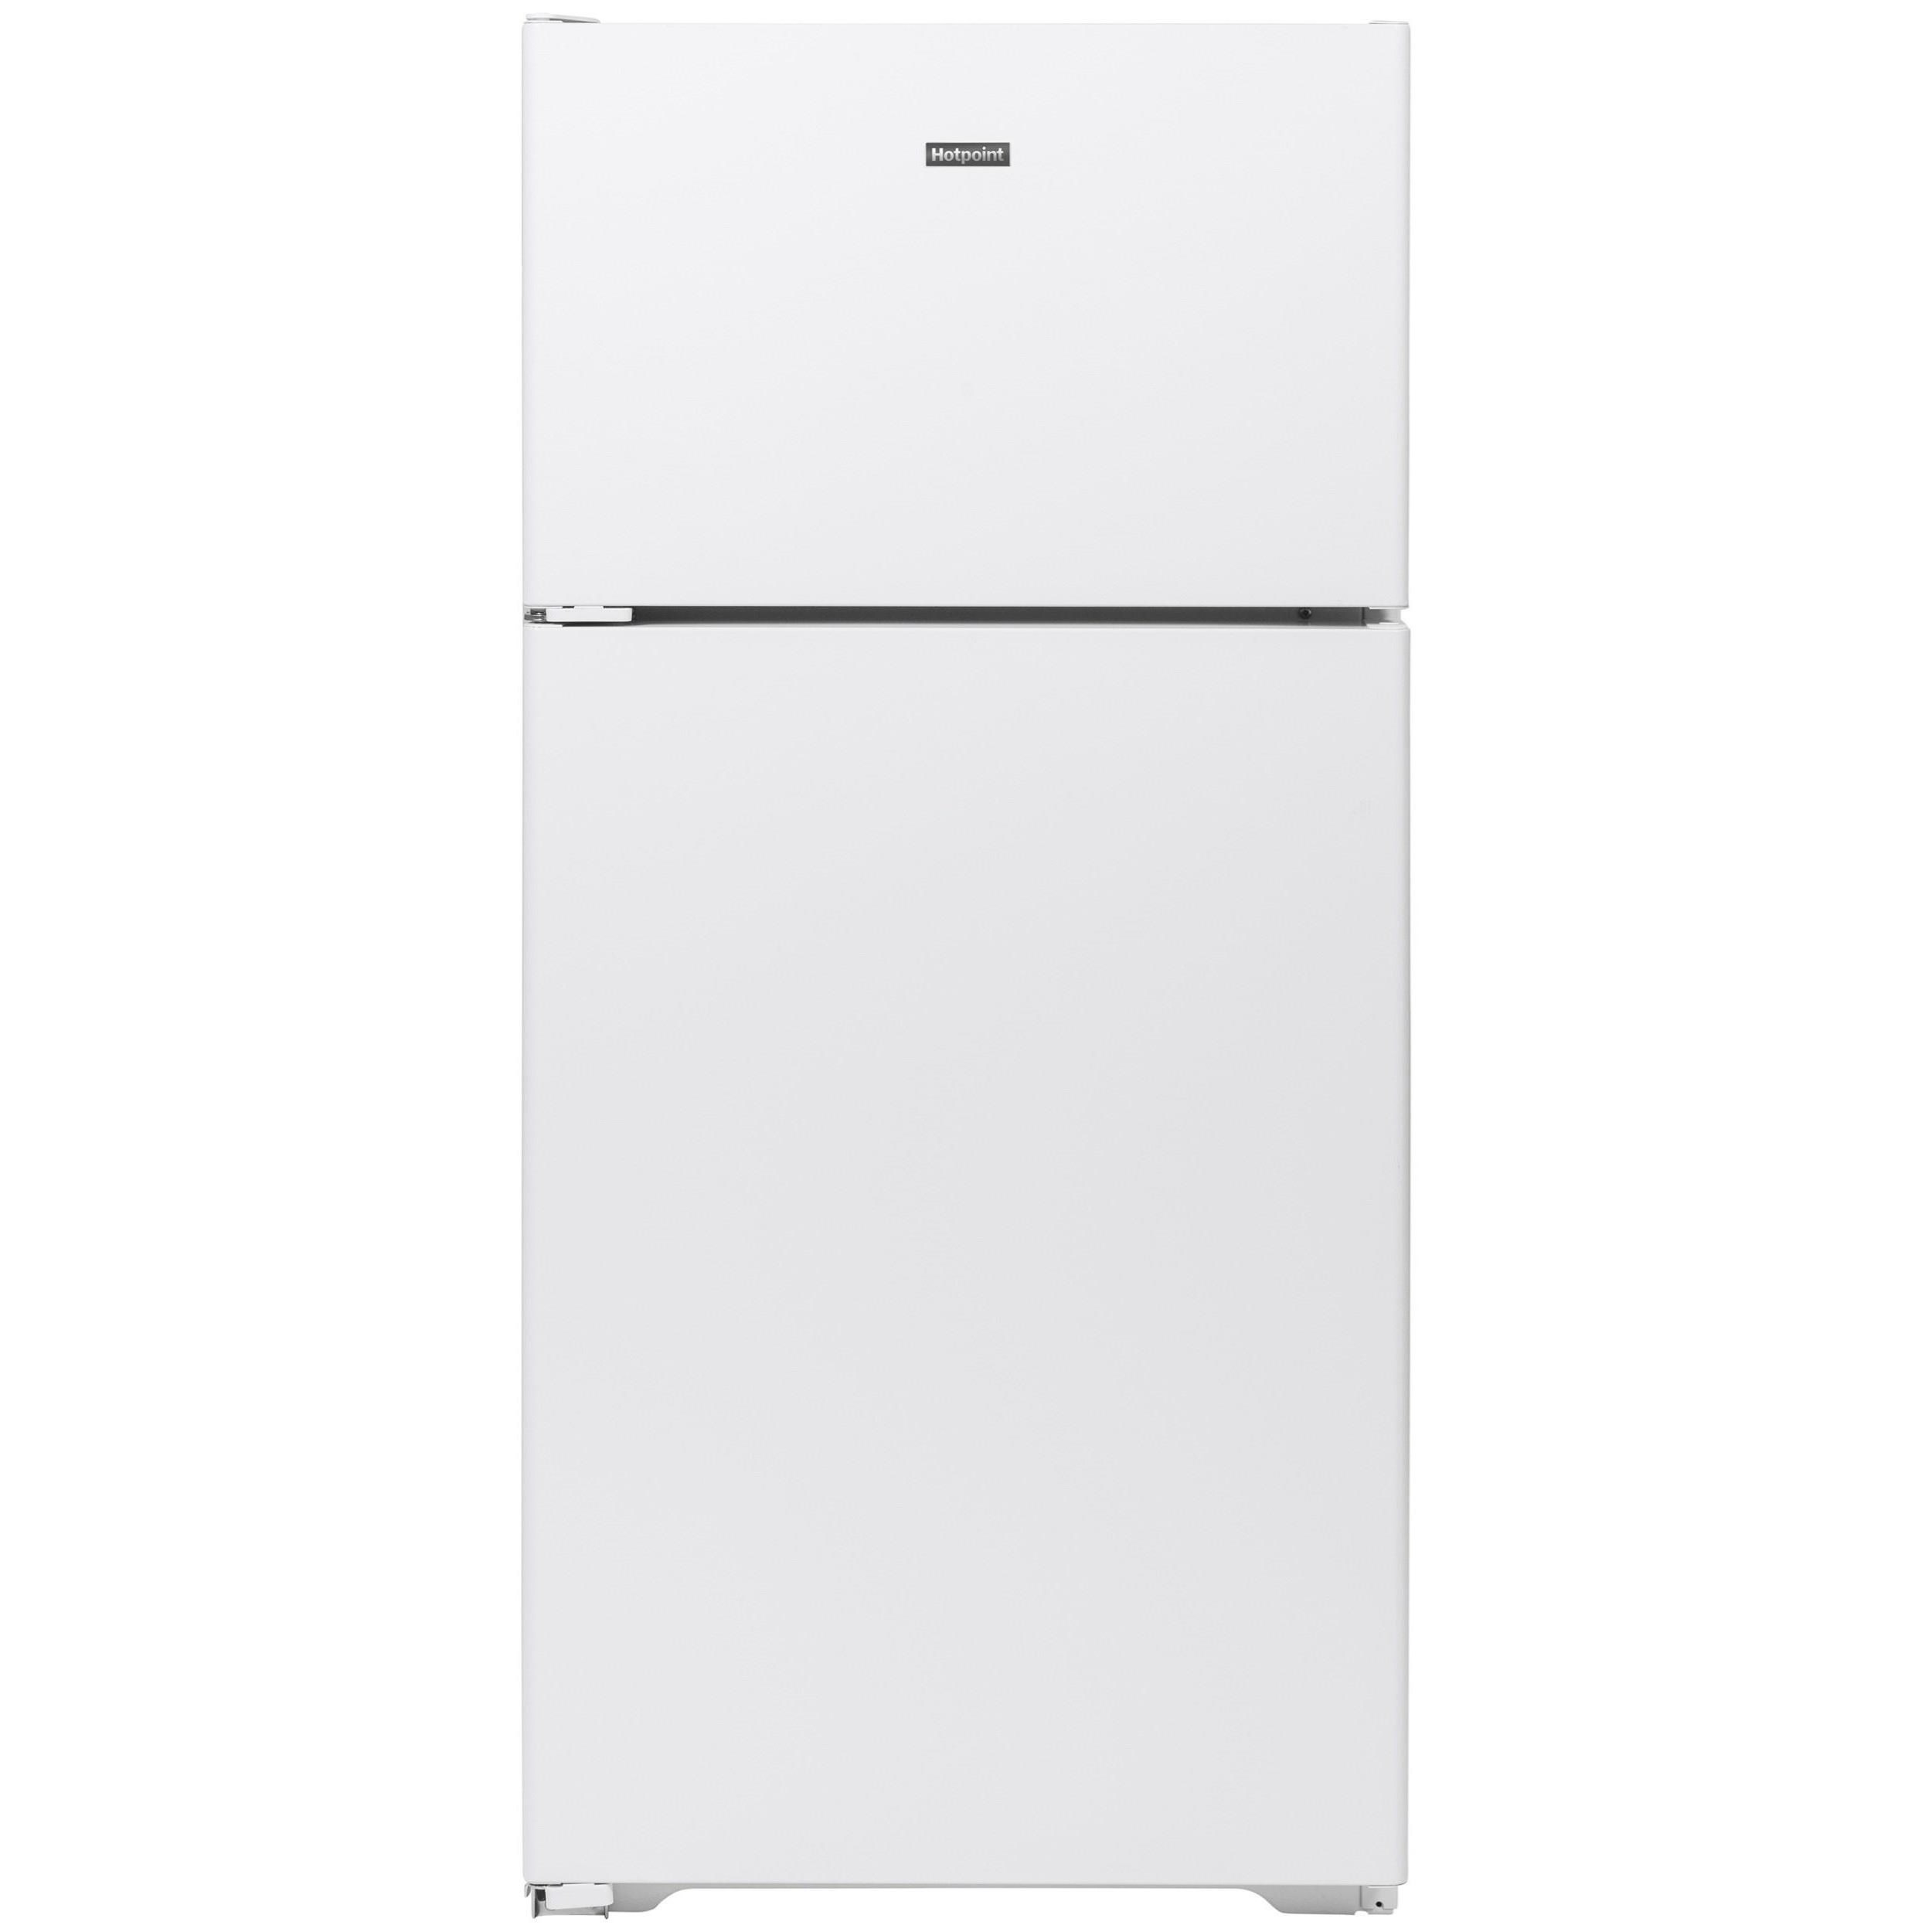 Hotpoint Refrigeration Hotpoint® 15.6 Cu. Ft. Refrigerator by GE Appliances at Furniture and ApplianceMart